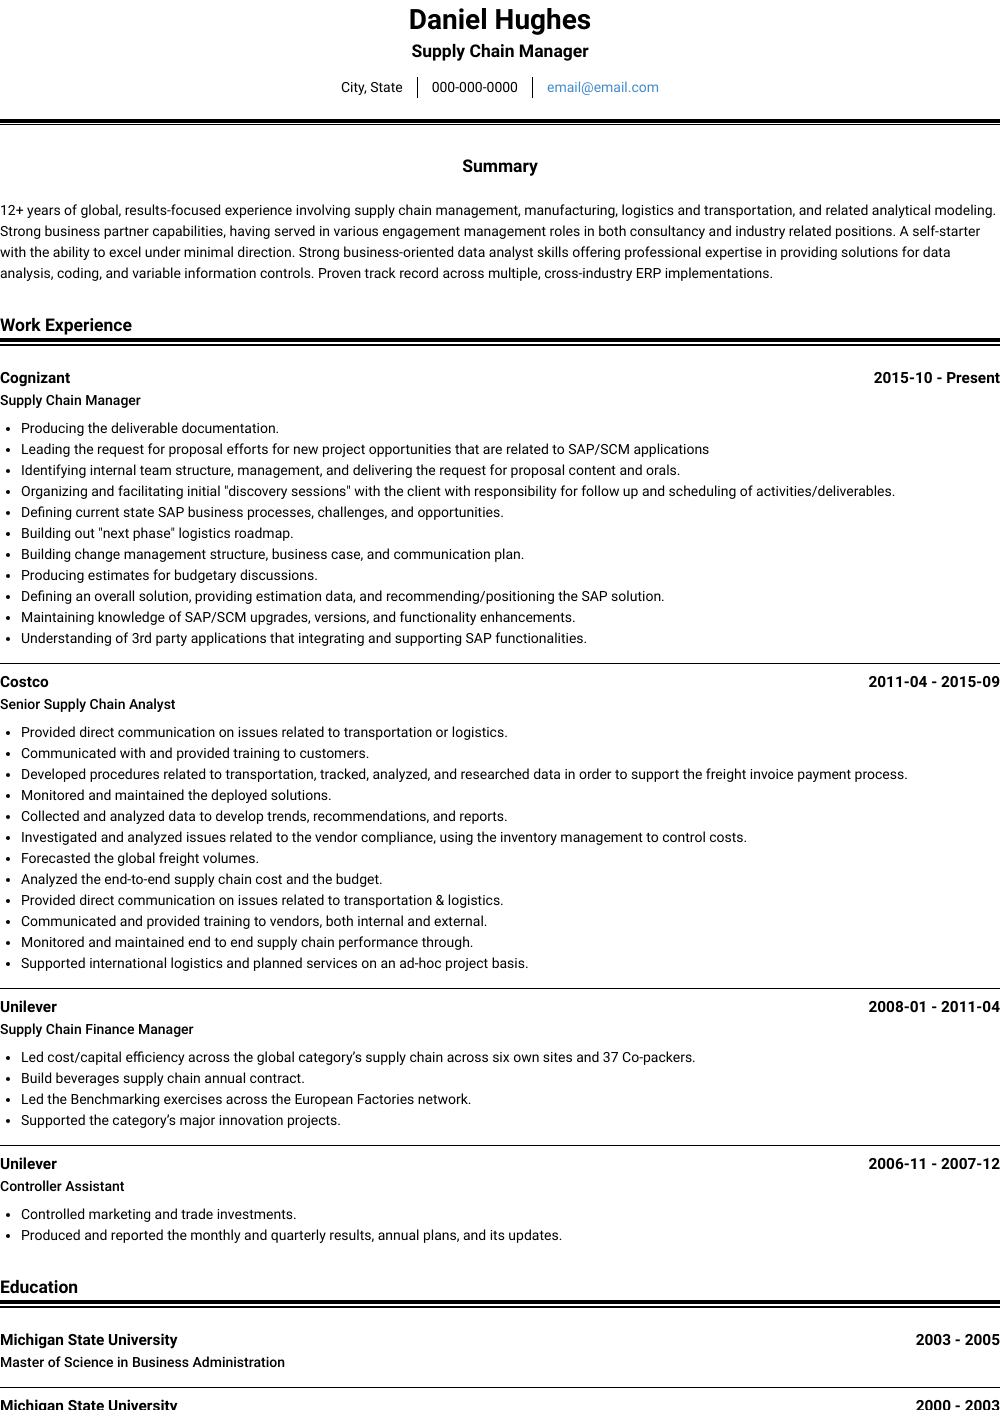 Supply Chain Manager Resume Sample and Template